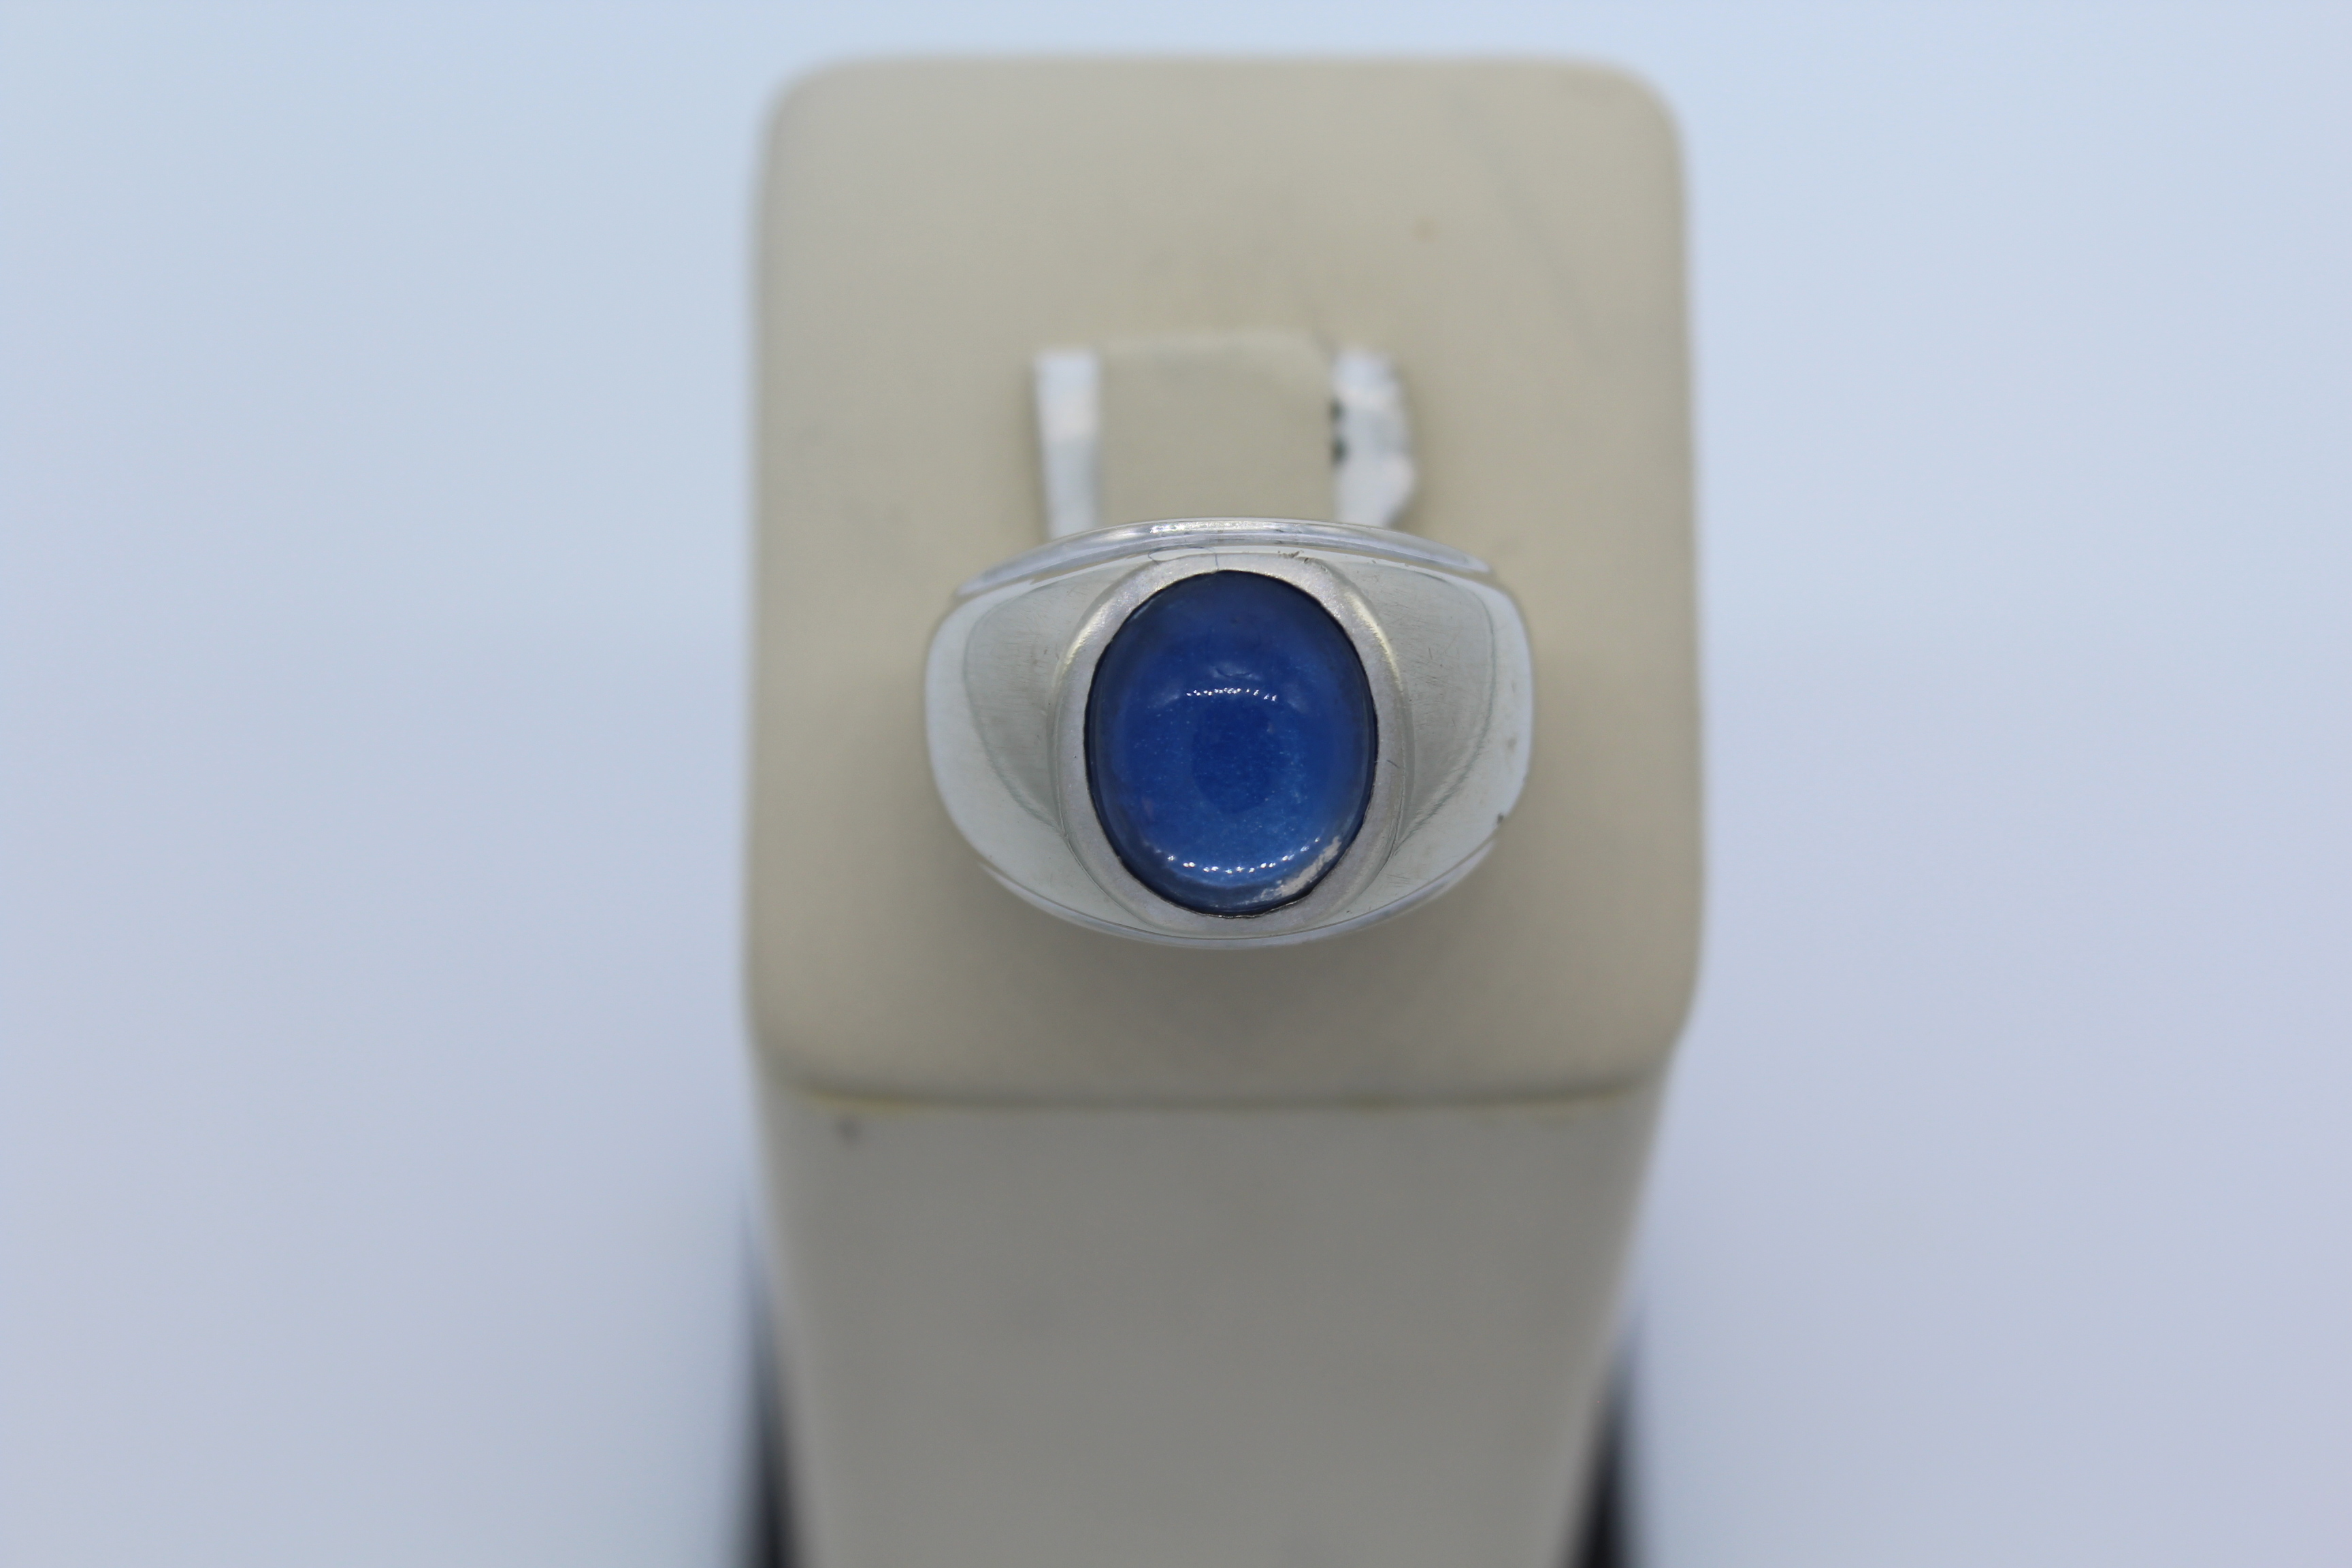 14k White Gold with Blue Stone Men's Ring